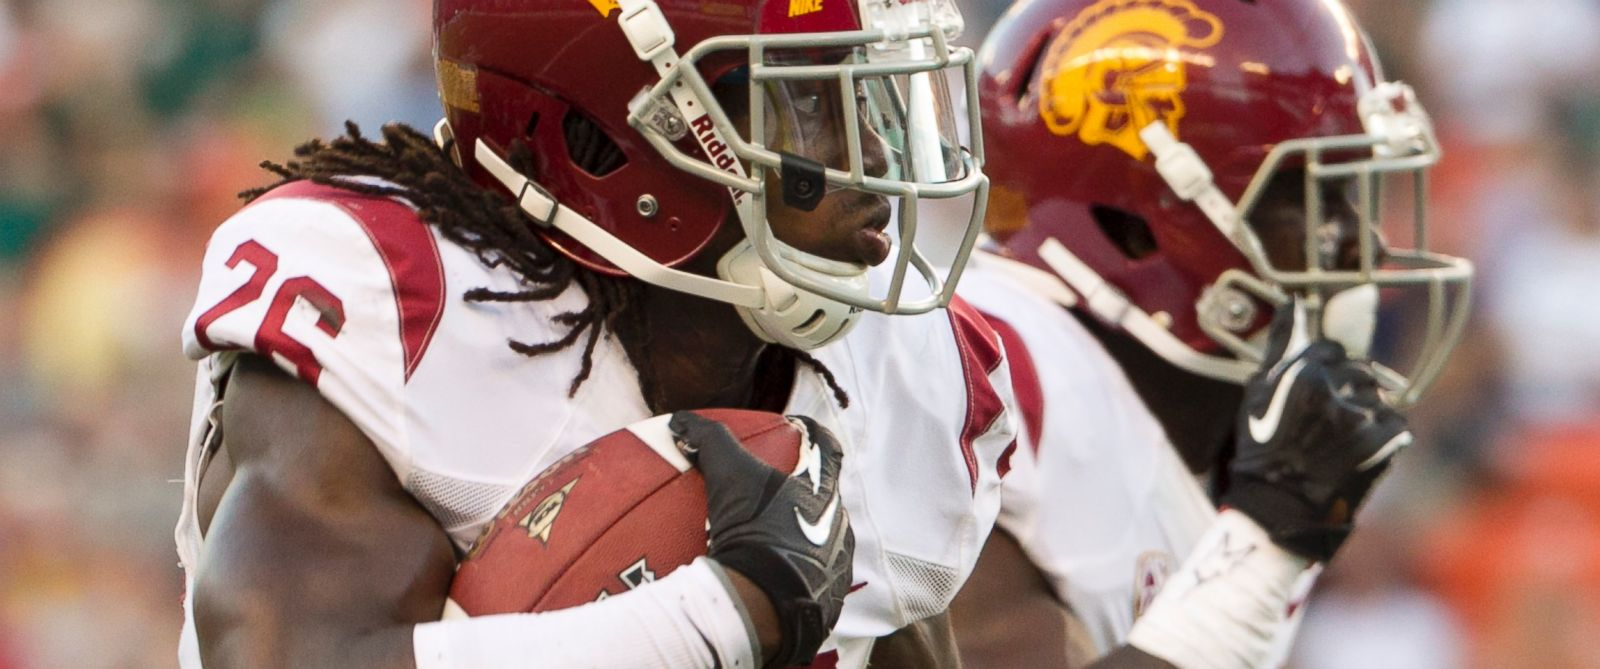 PHOTO: Southern California cornerback Josh Shaw runs back an interception for a touchdown against Hawaii during the second quarter of an NCAA college football game in Honolulu on Aug. 29, 2013.